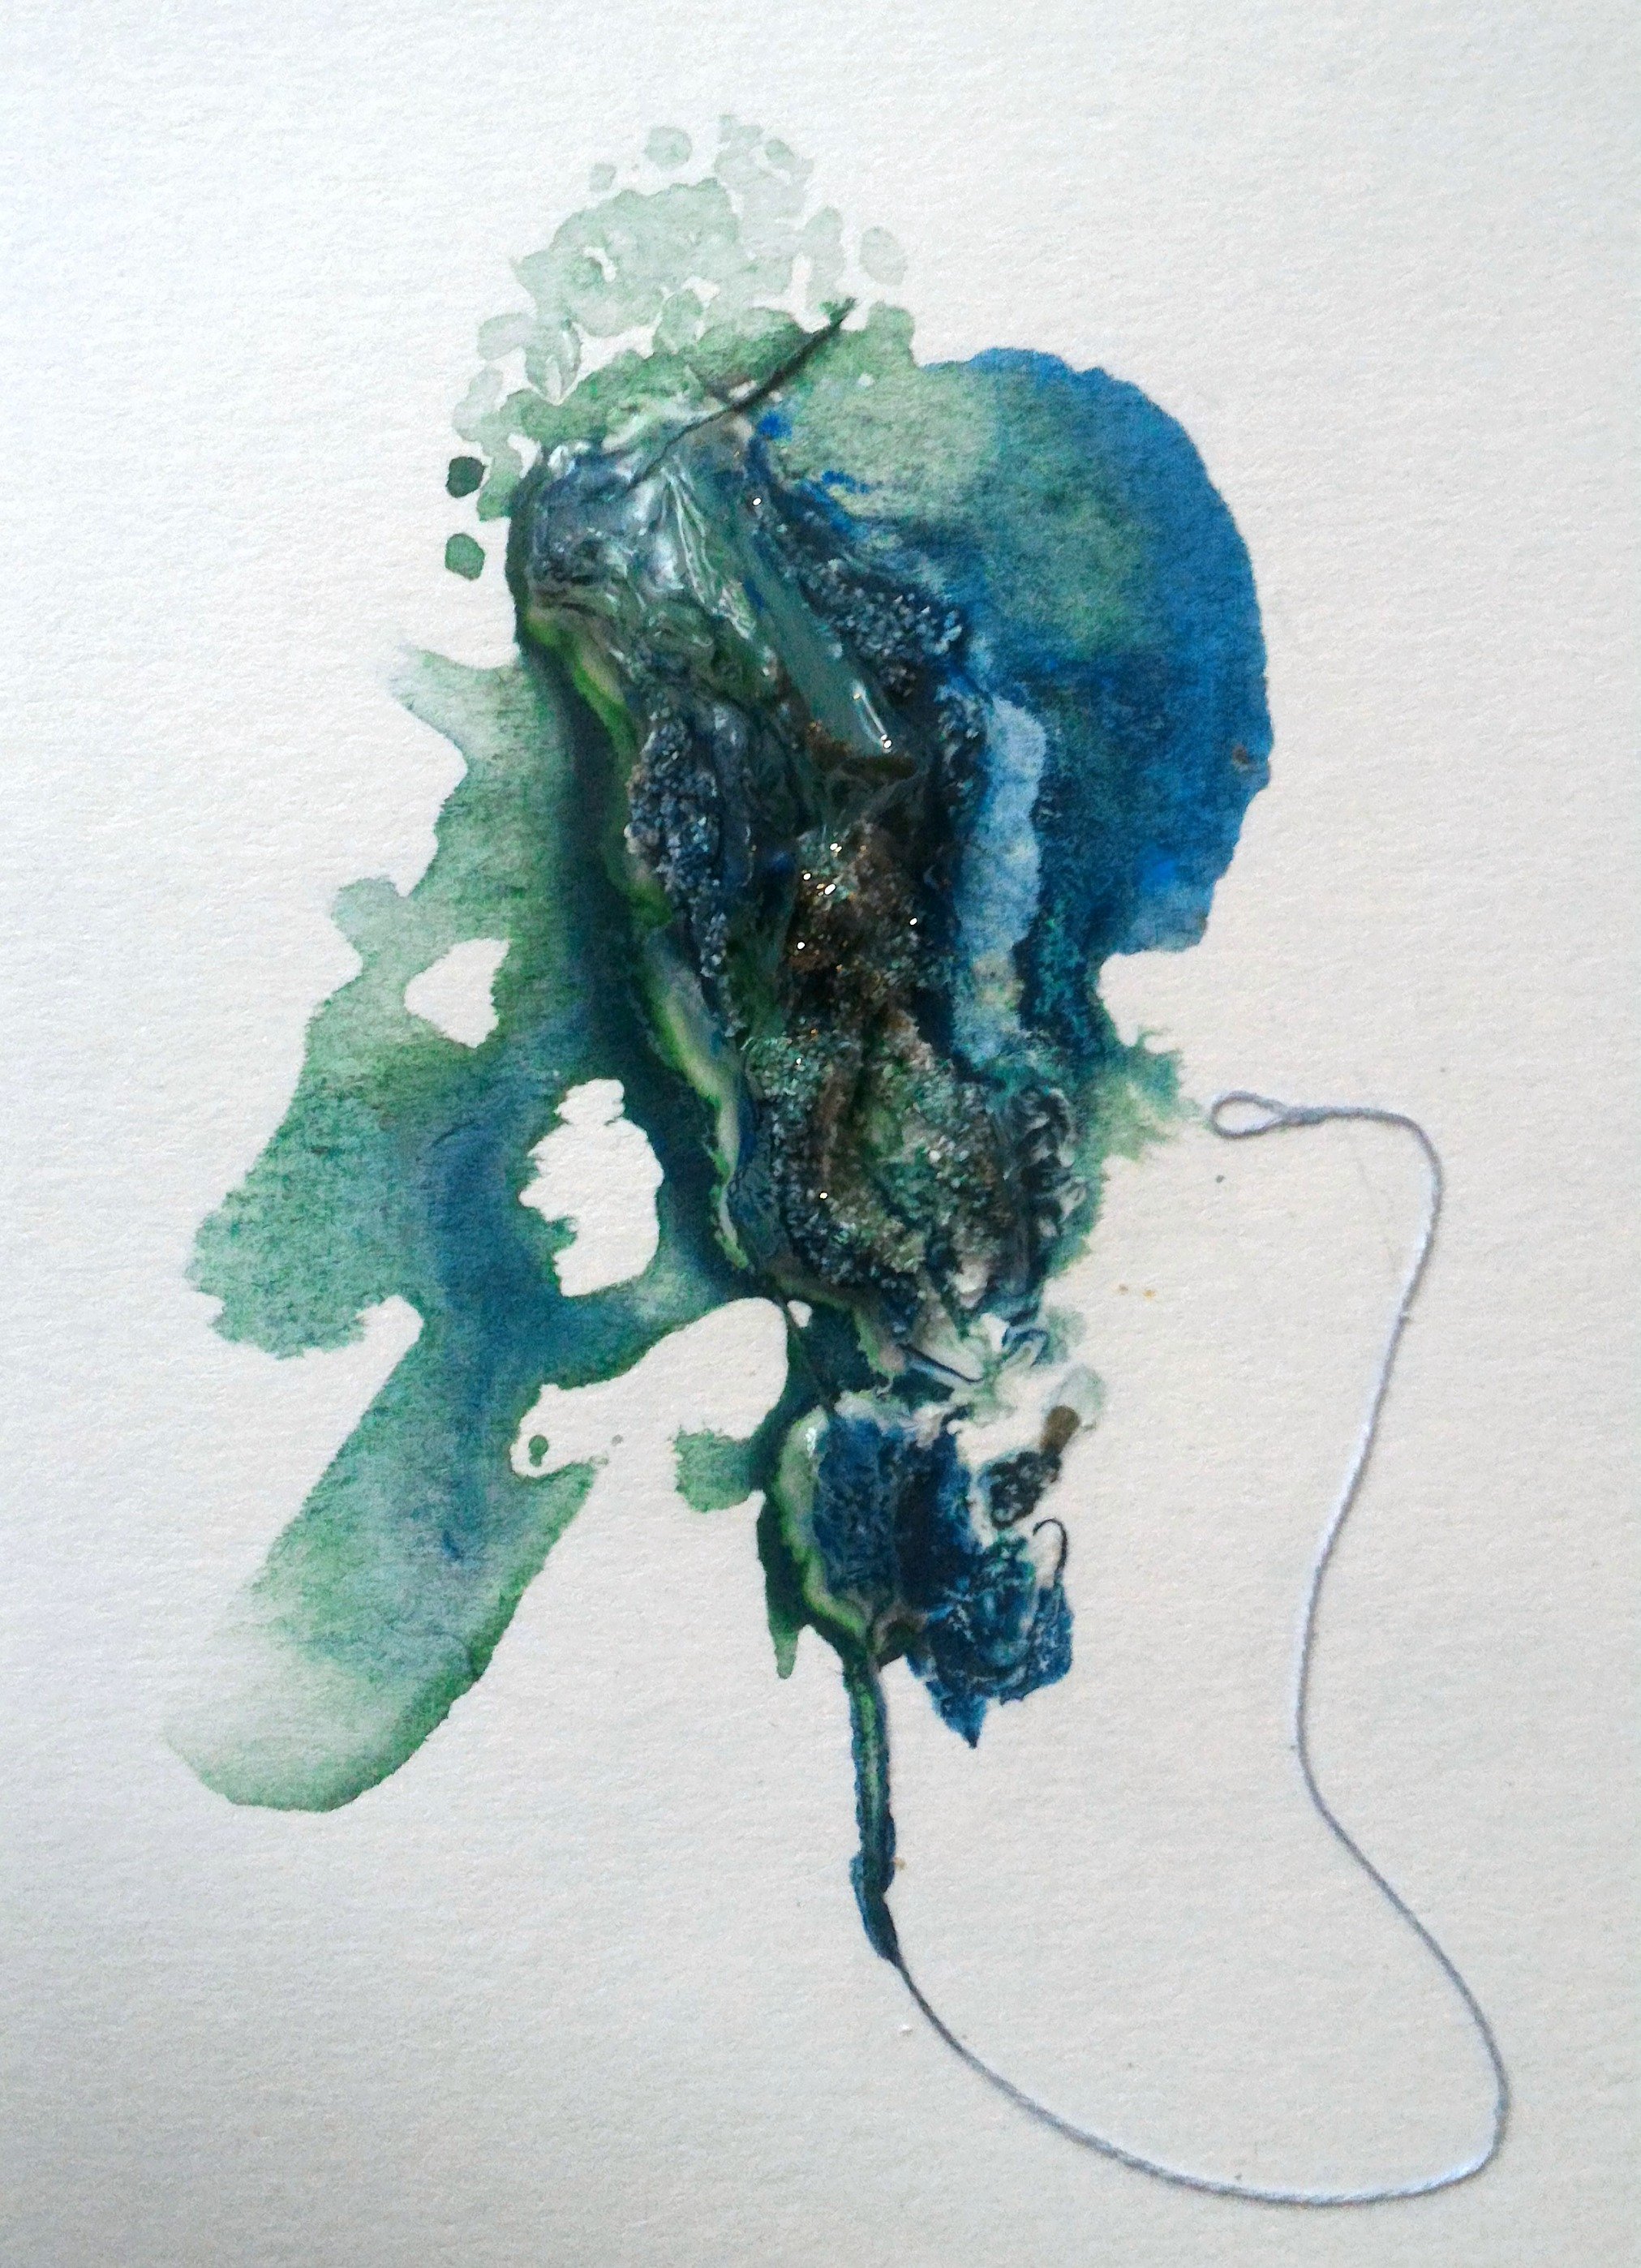 Plunge, 4×6″, mixed media on watercolour paper